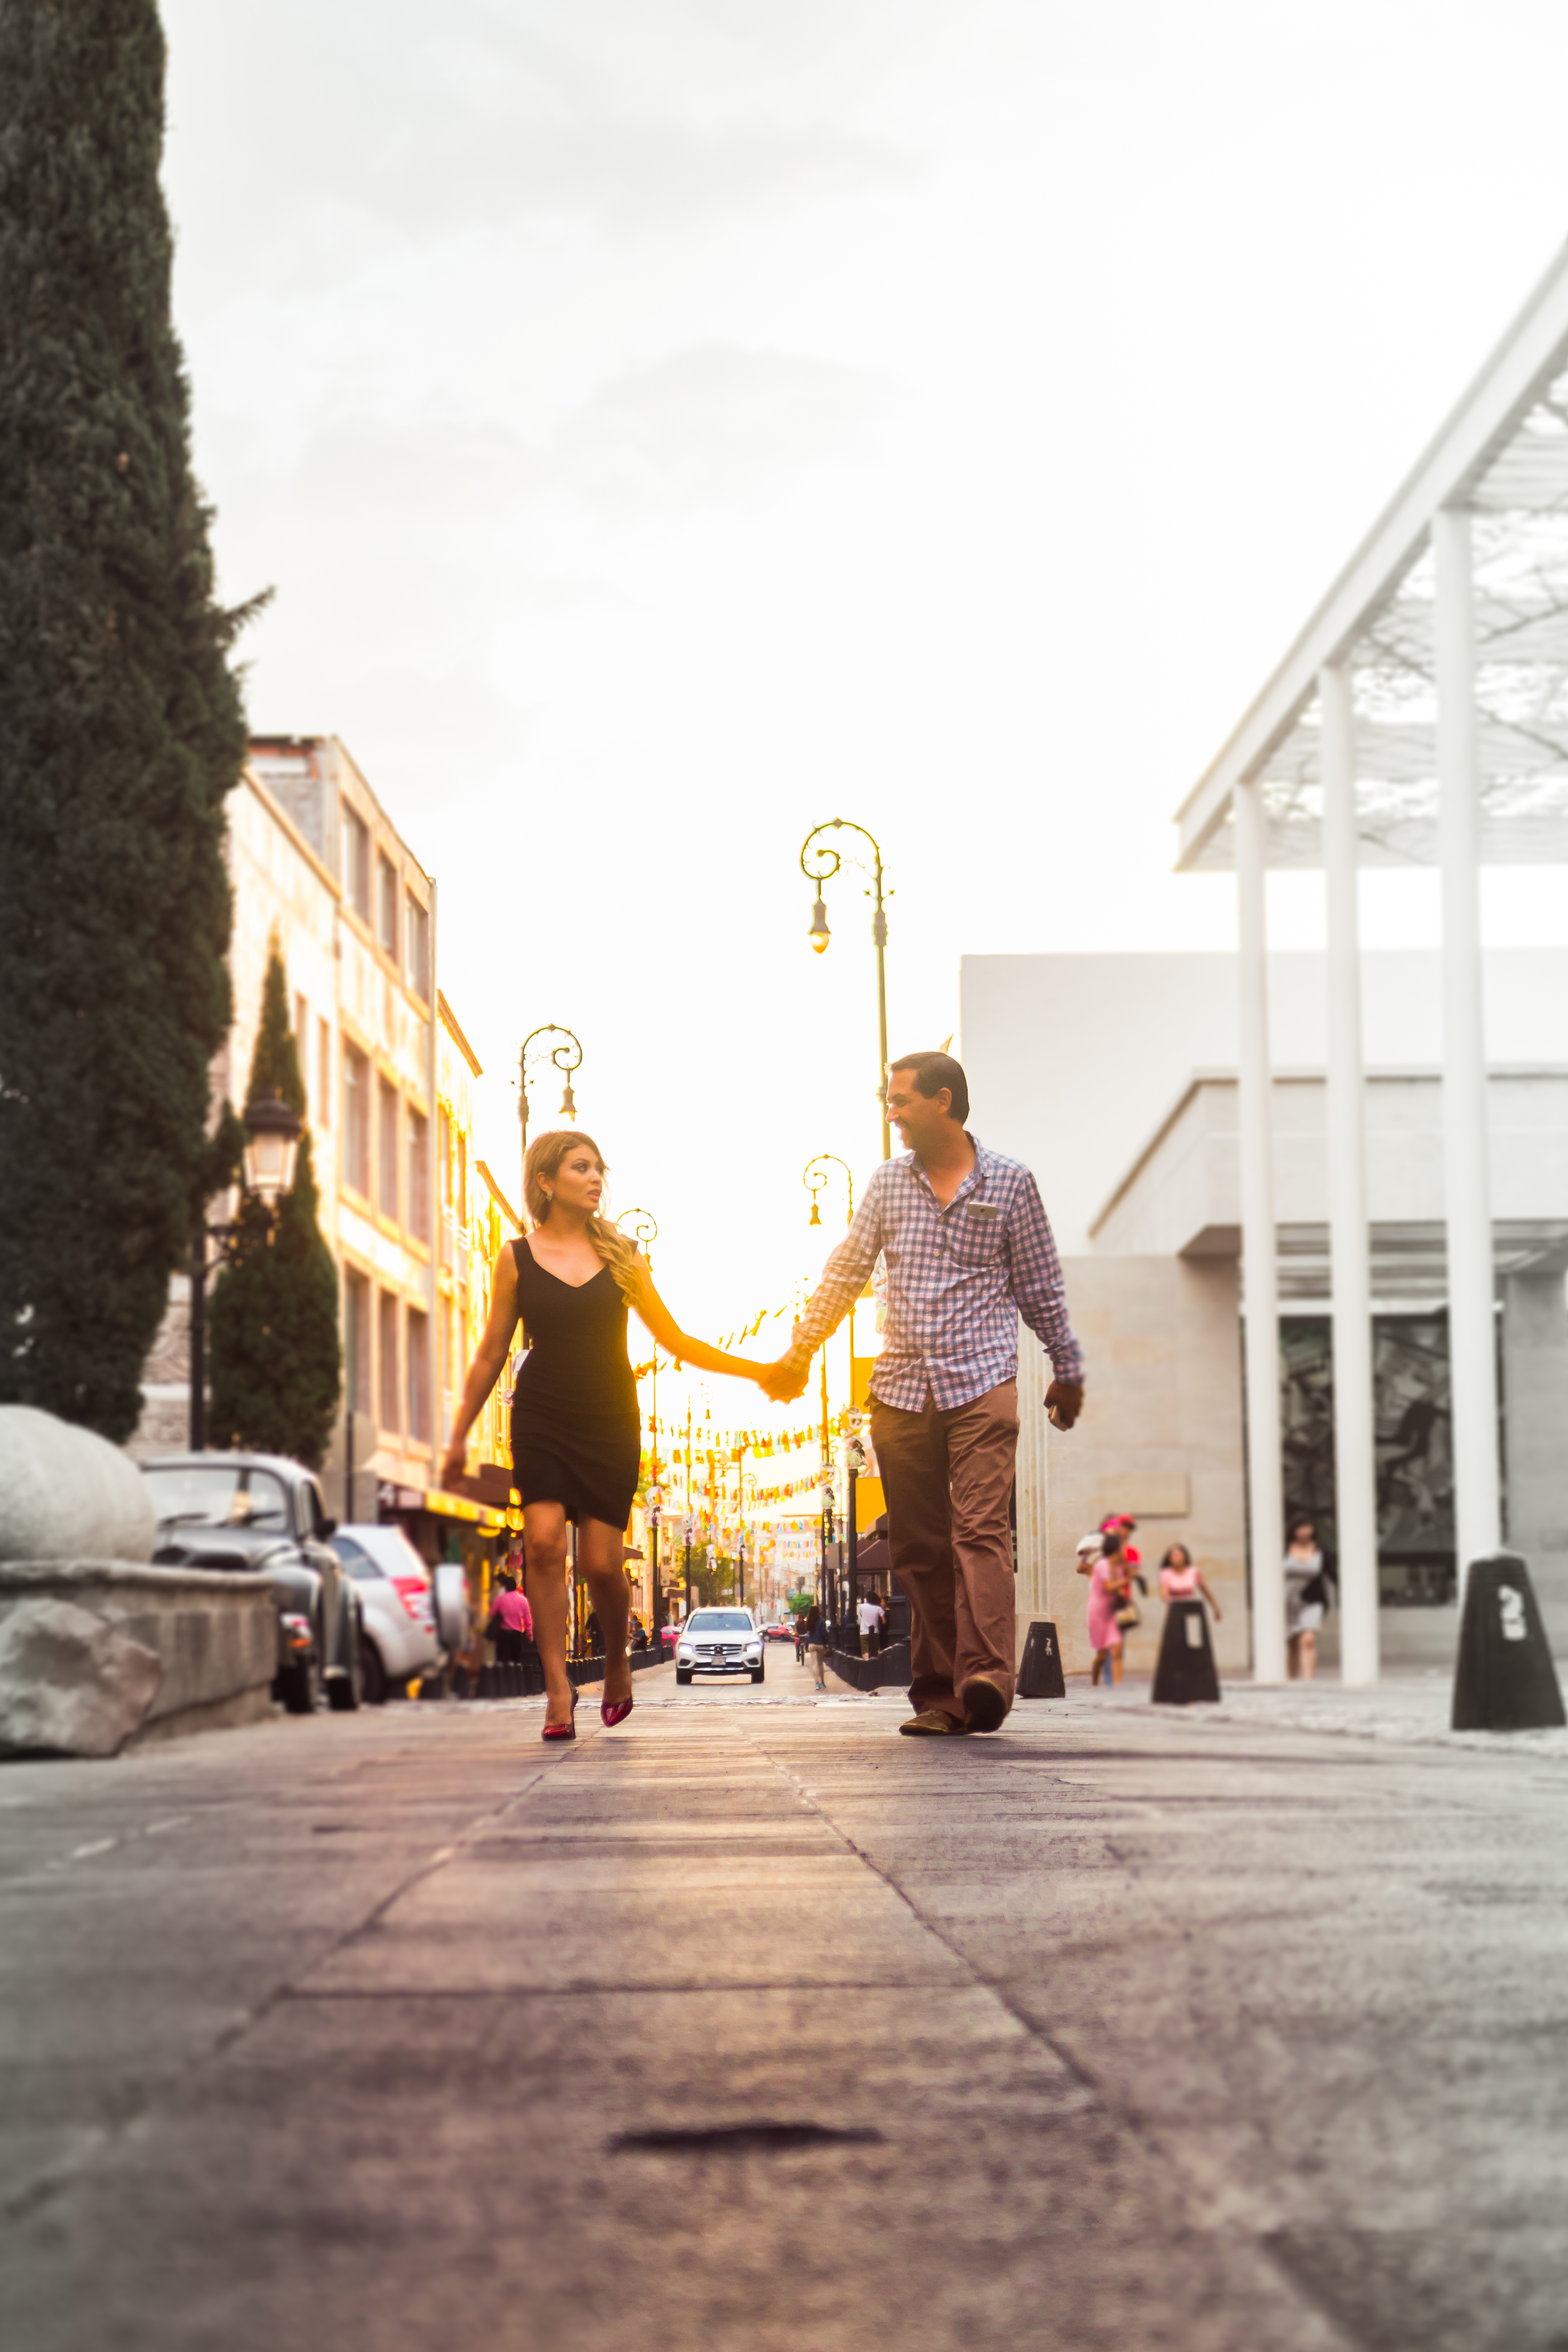 Man and Woman Walking on Street While Holding Hands